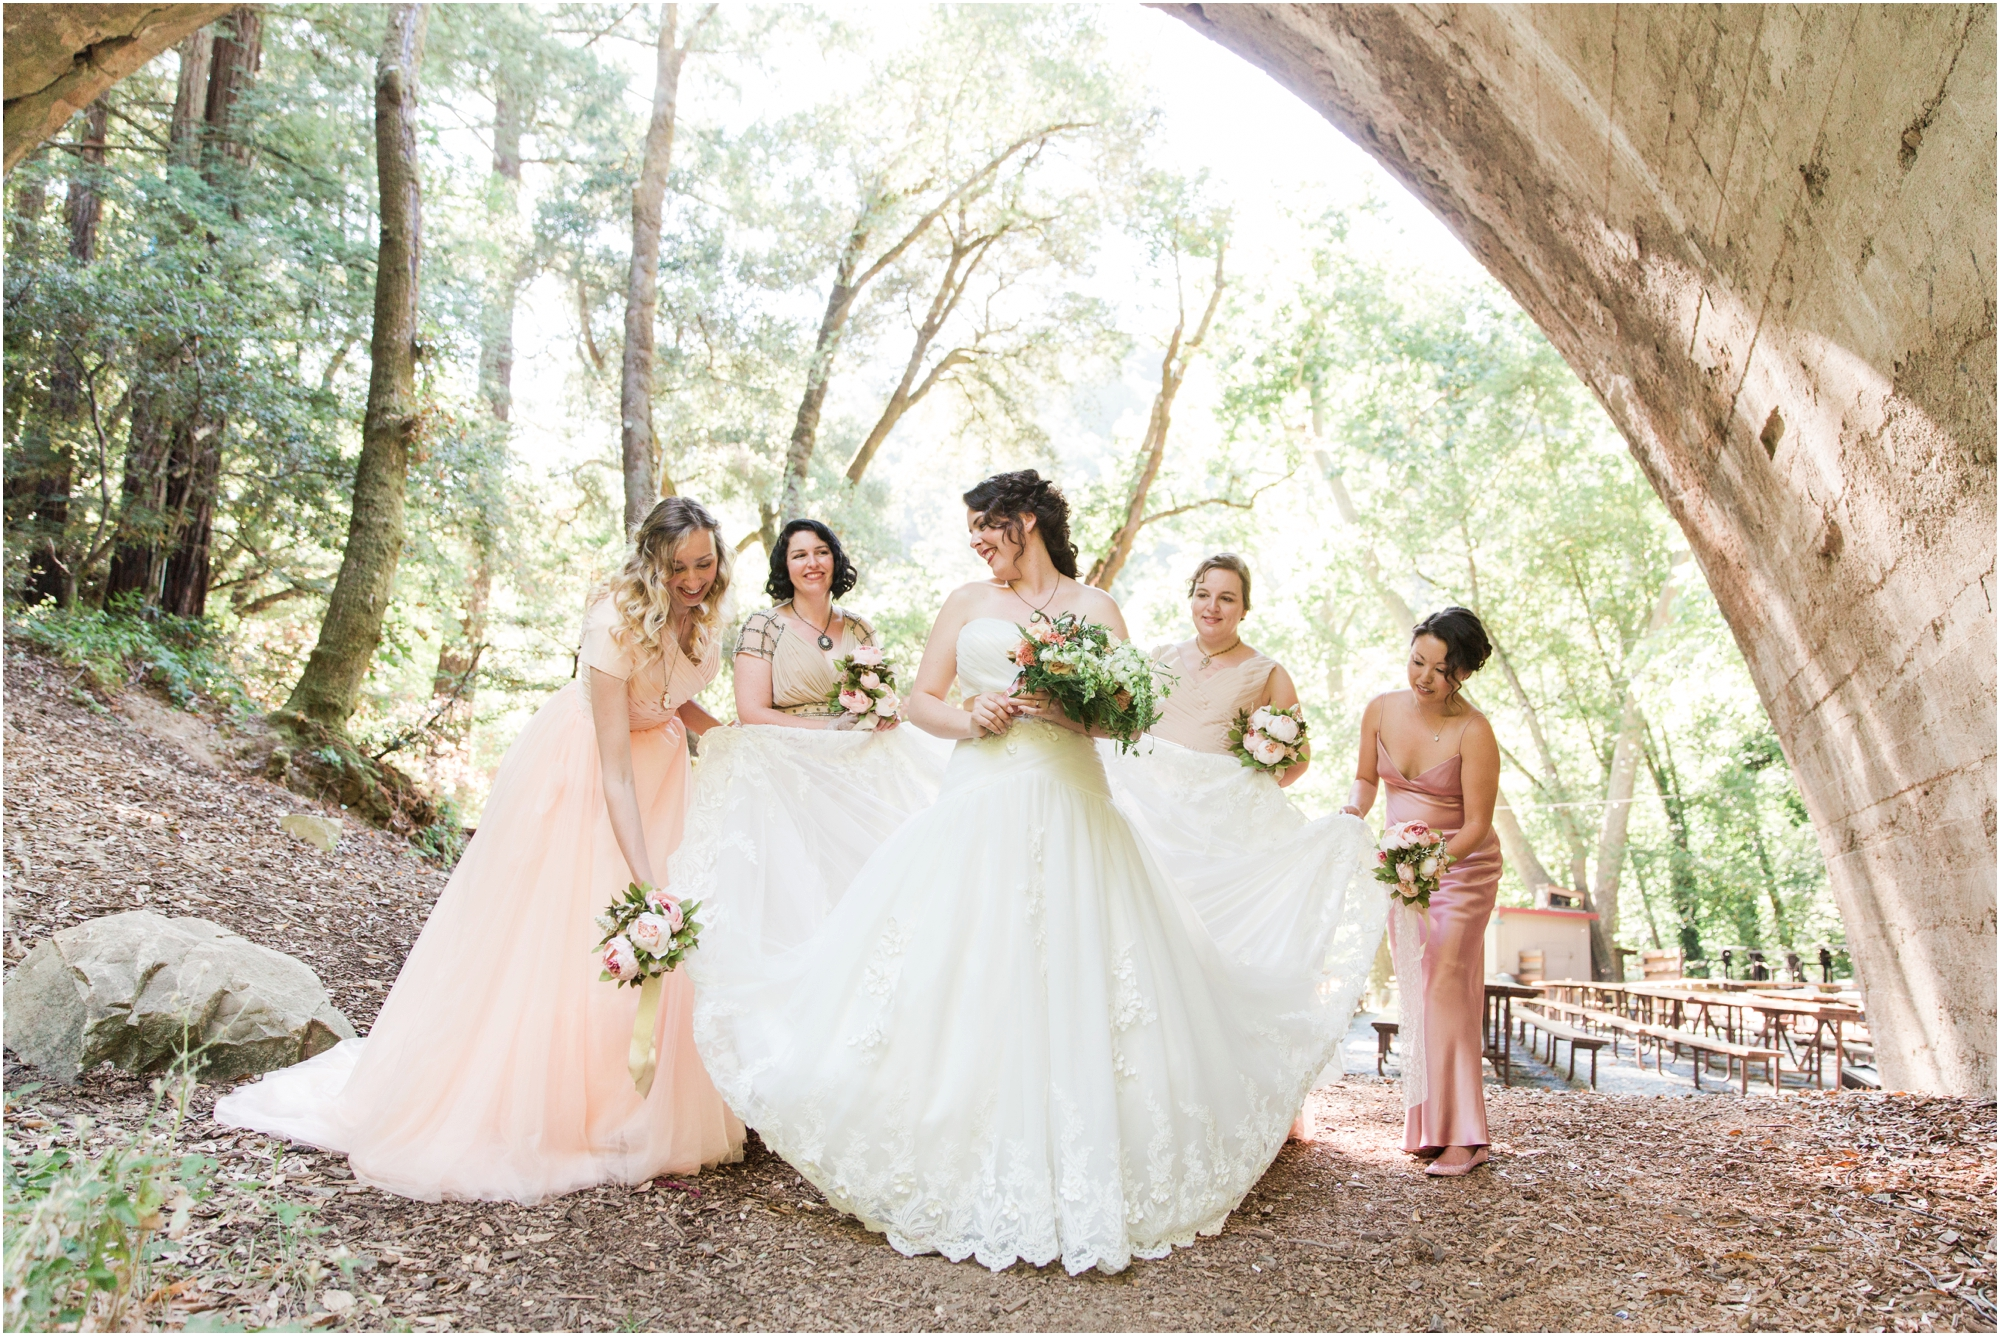 Saratoga Springs wedding pictures by Briana Calderon Photography_1829.jpg